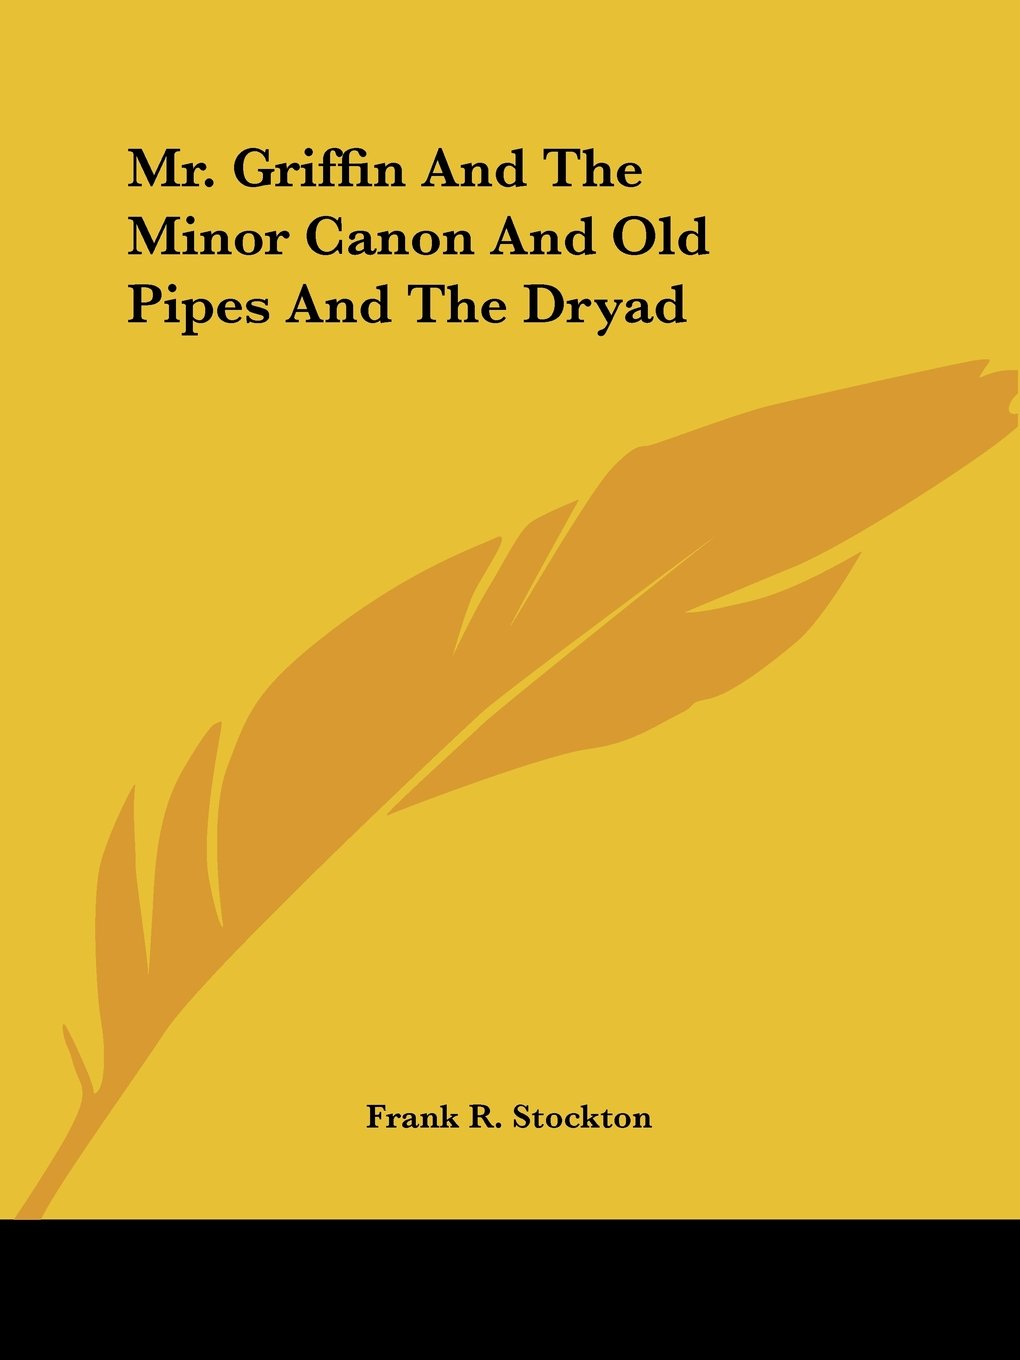 Read Online Mr. Griffin And The Minor Canon And Old Pipes And The Dryad pdf epub